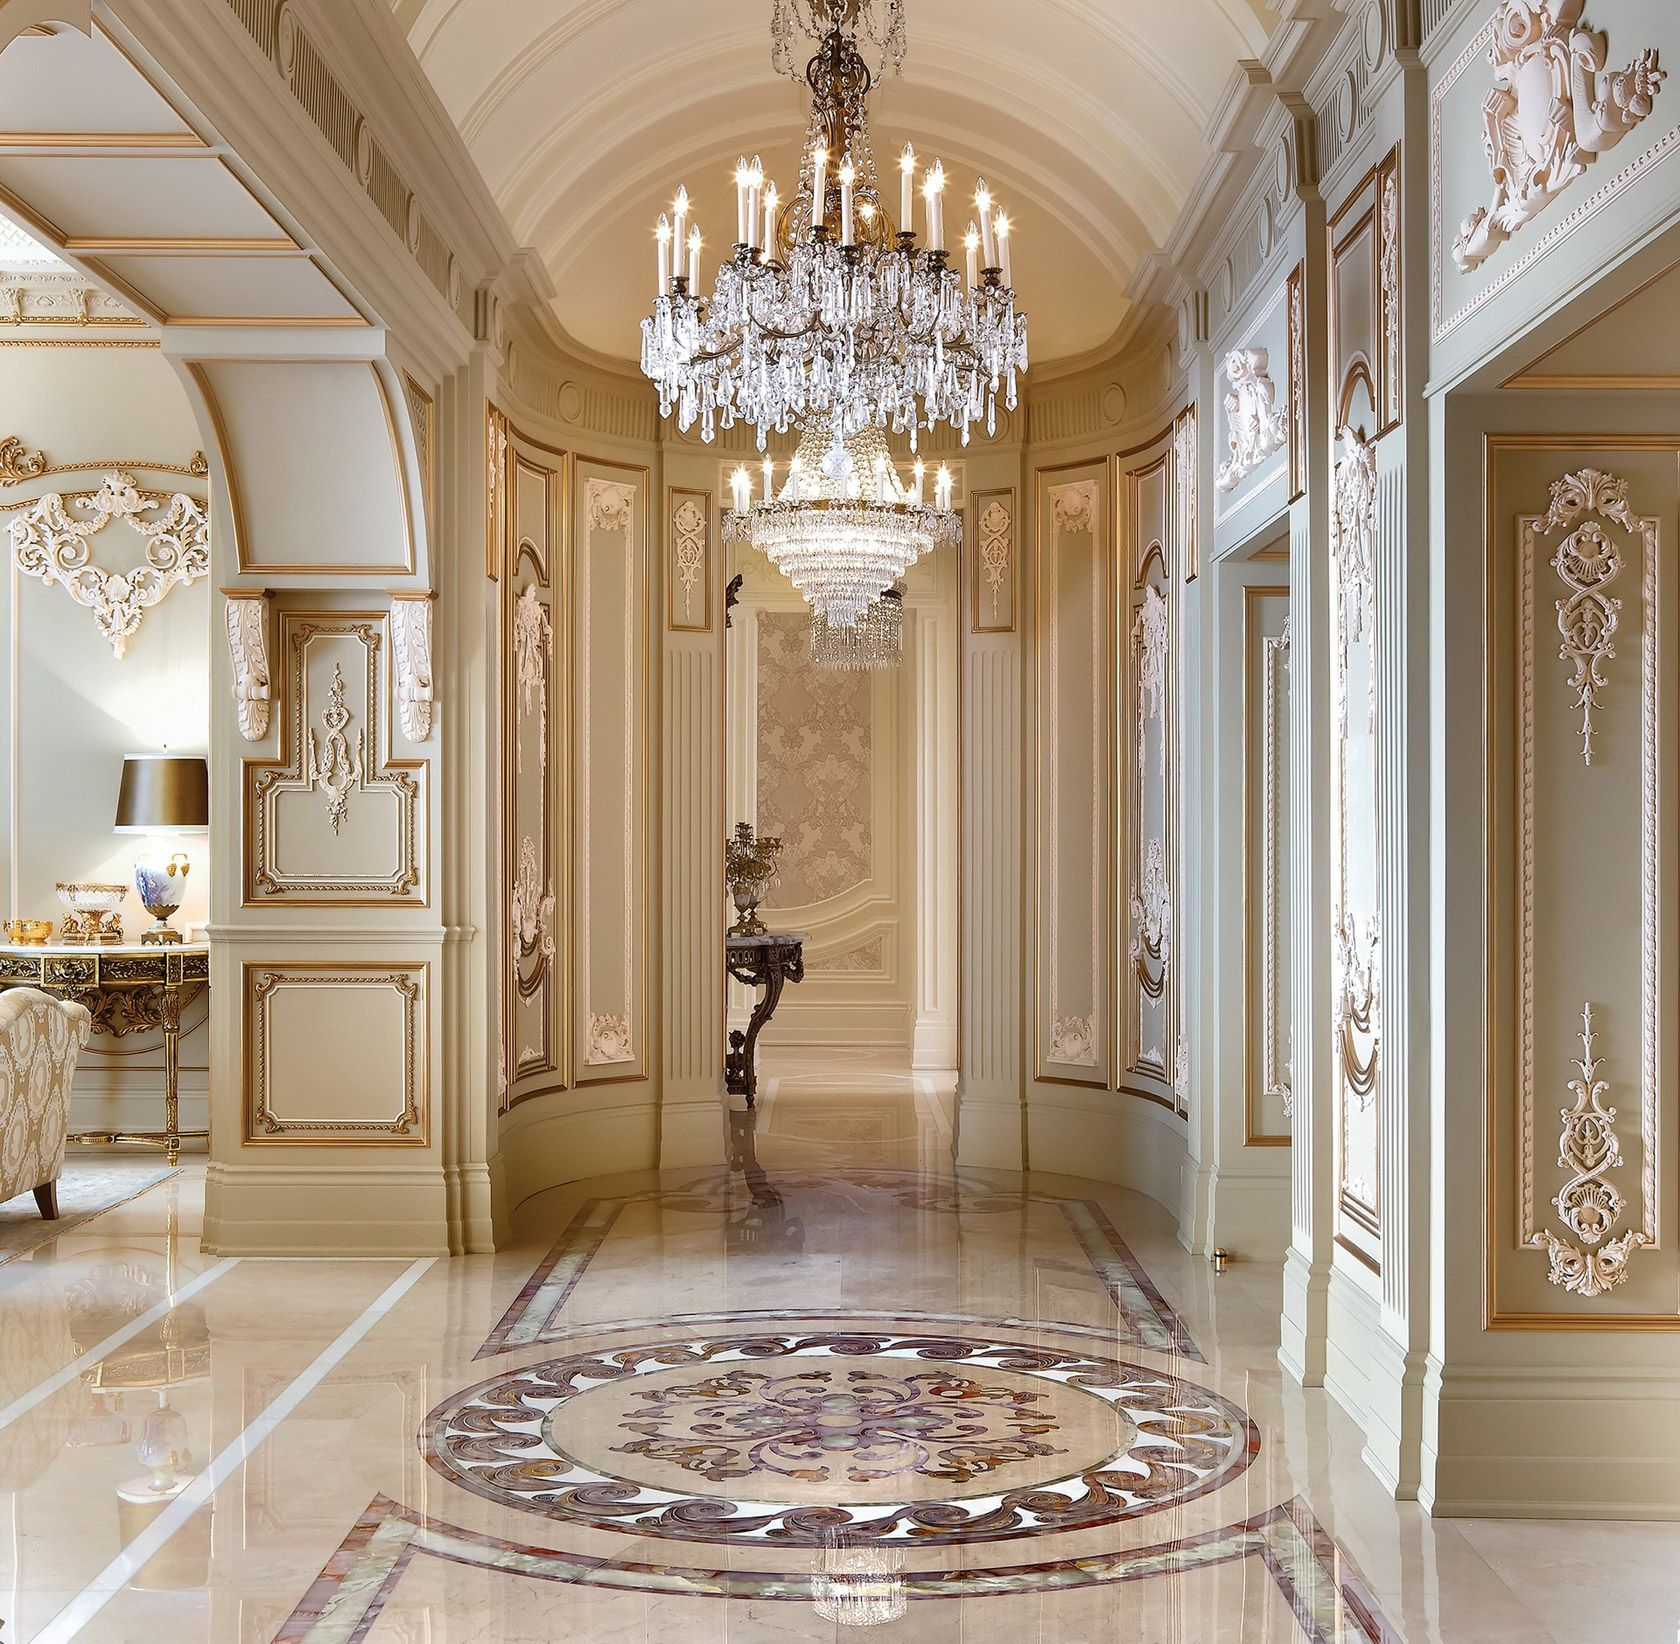 Beautiful Luxury Home Interior: The House Of LMD A Reputation For Sophisticated